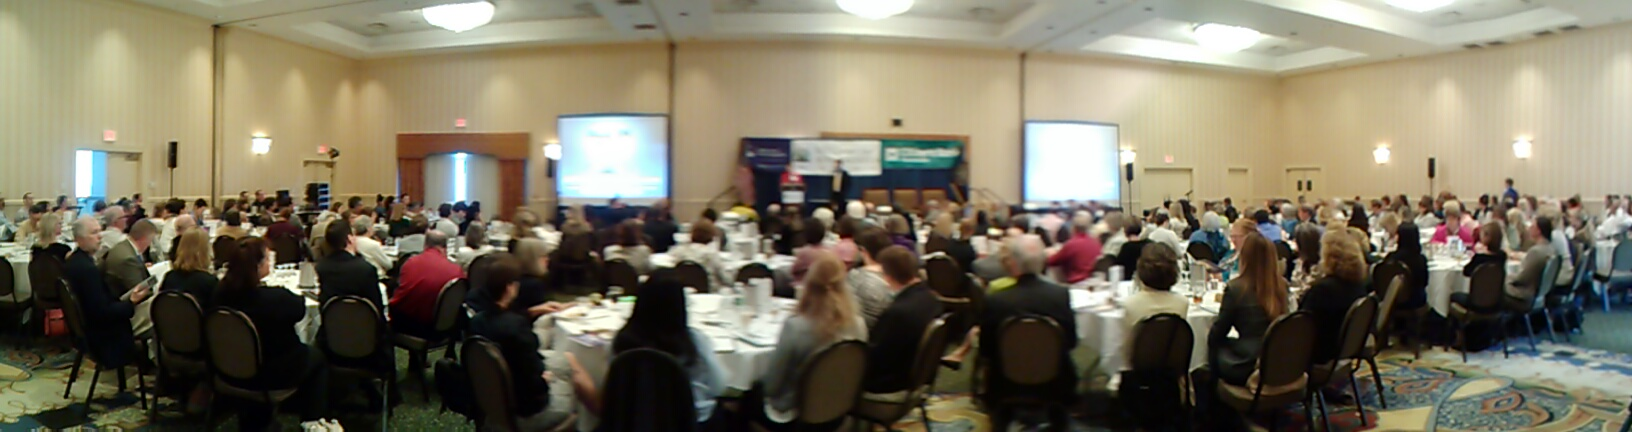 New Hampshire Center for NonProfits Leadership Summit picture